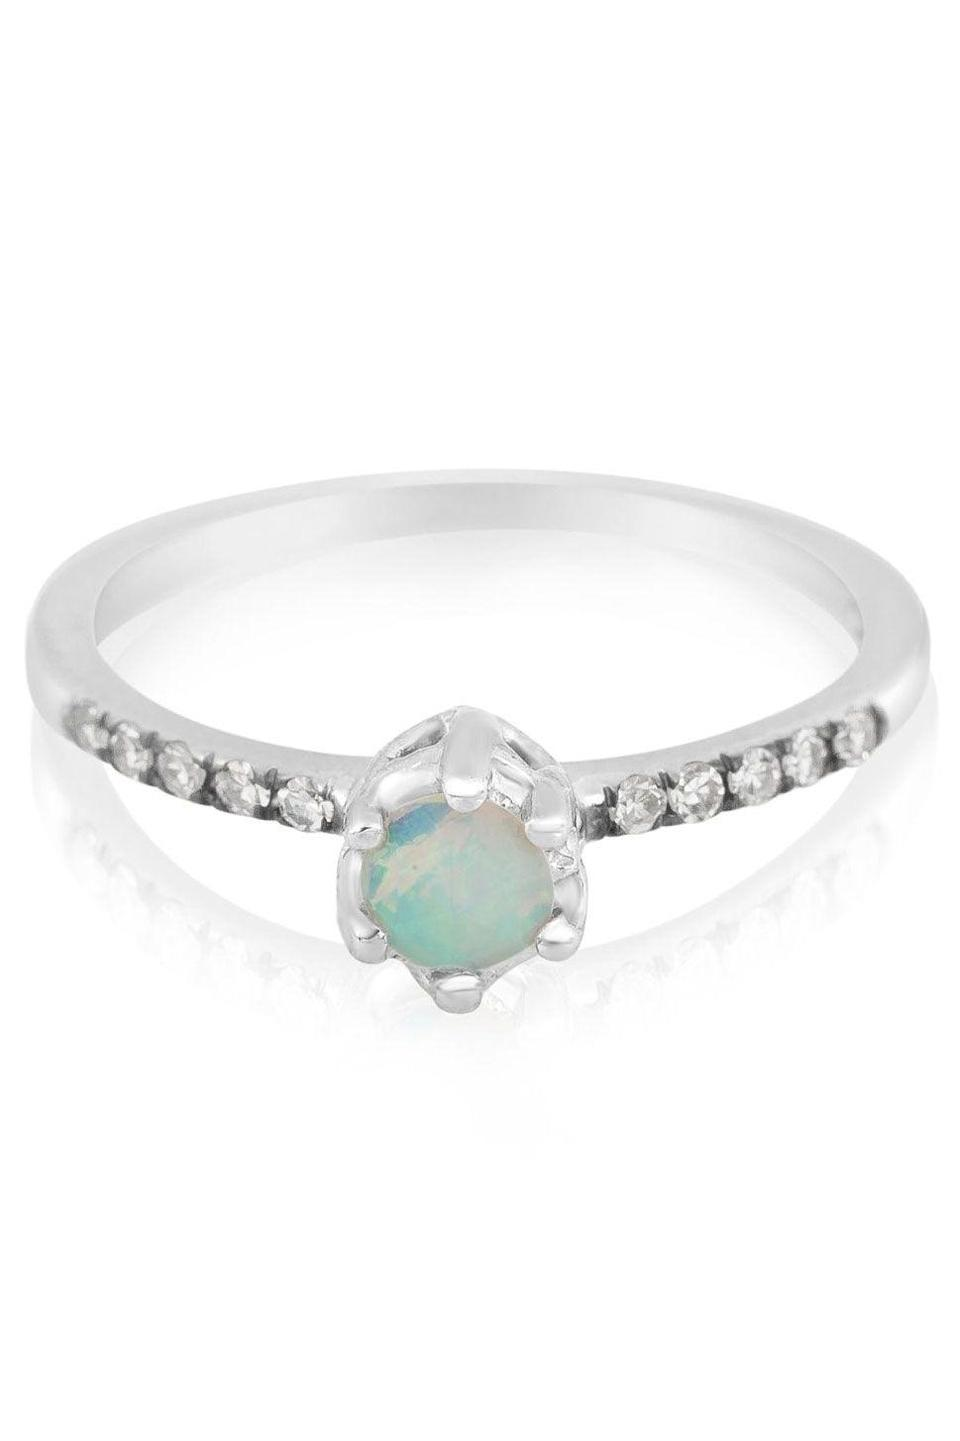 """<p><strong>Maniamania</strong> Opal Entity Solitaire Ring, $1,800, available at <a href=""""http://www.stoneandstrand.com/jewelry/rings/opal-entity-solitaire-ring-14k-gold-white-diamond-opal"""" rel=""""nofollow noopener"""" target=""""_blank"""" data-ylk=""""slk:Stone & Strand"""" class=""""link rapid-noclick-resp"""">Stone & Strand</a>.</p>"""